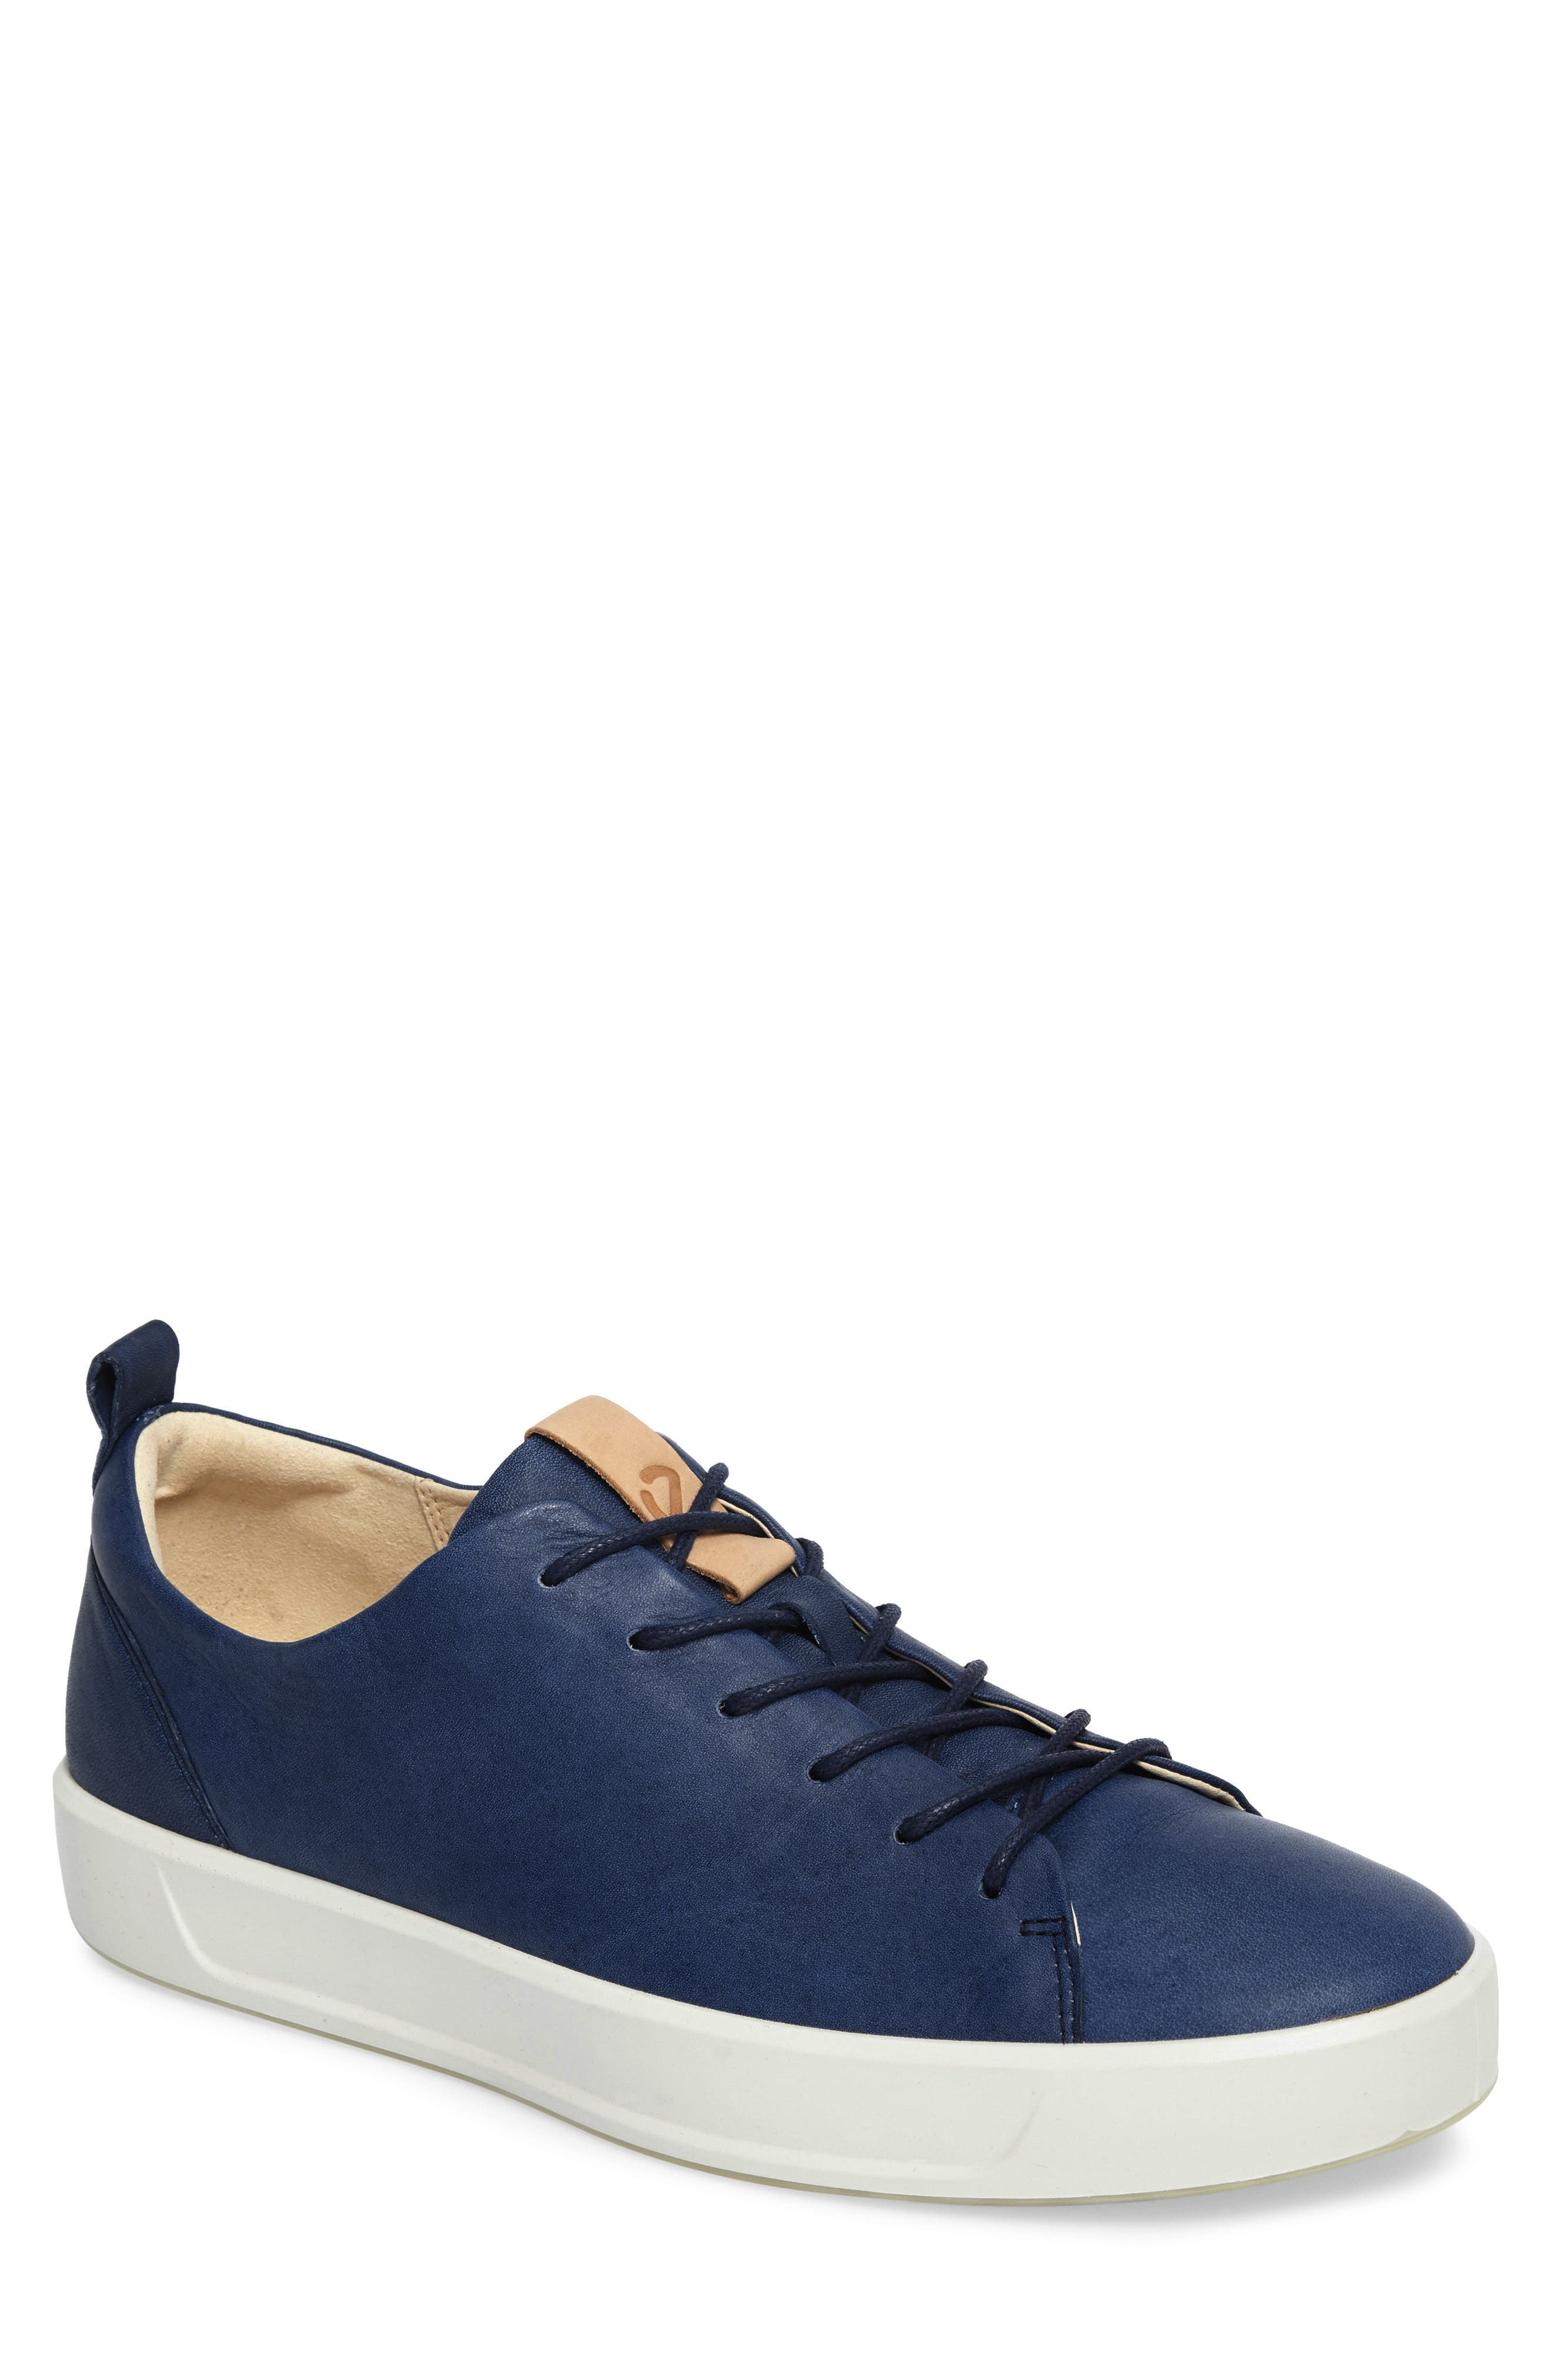 Soft 8 Sneaker,                             Main thumbnail 1, color,                             Indigo 7 Leather